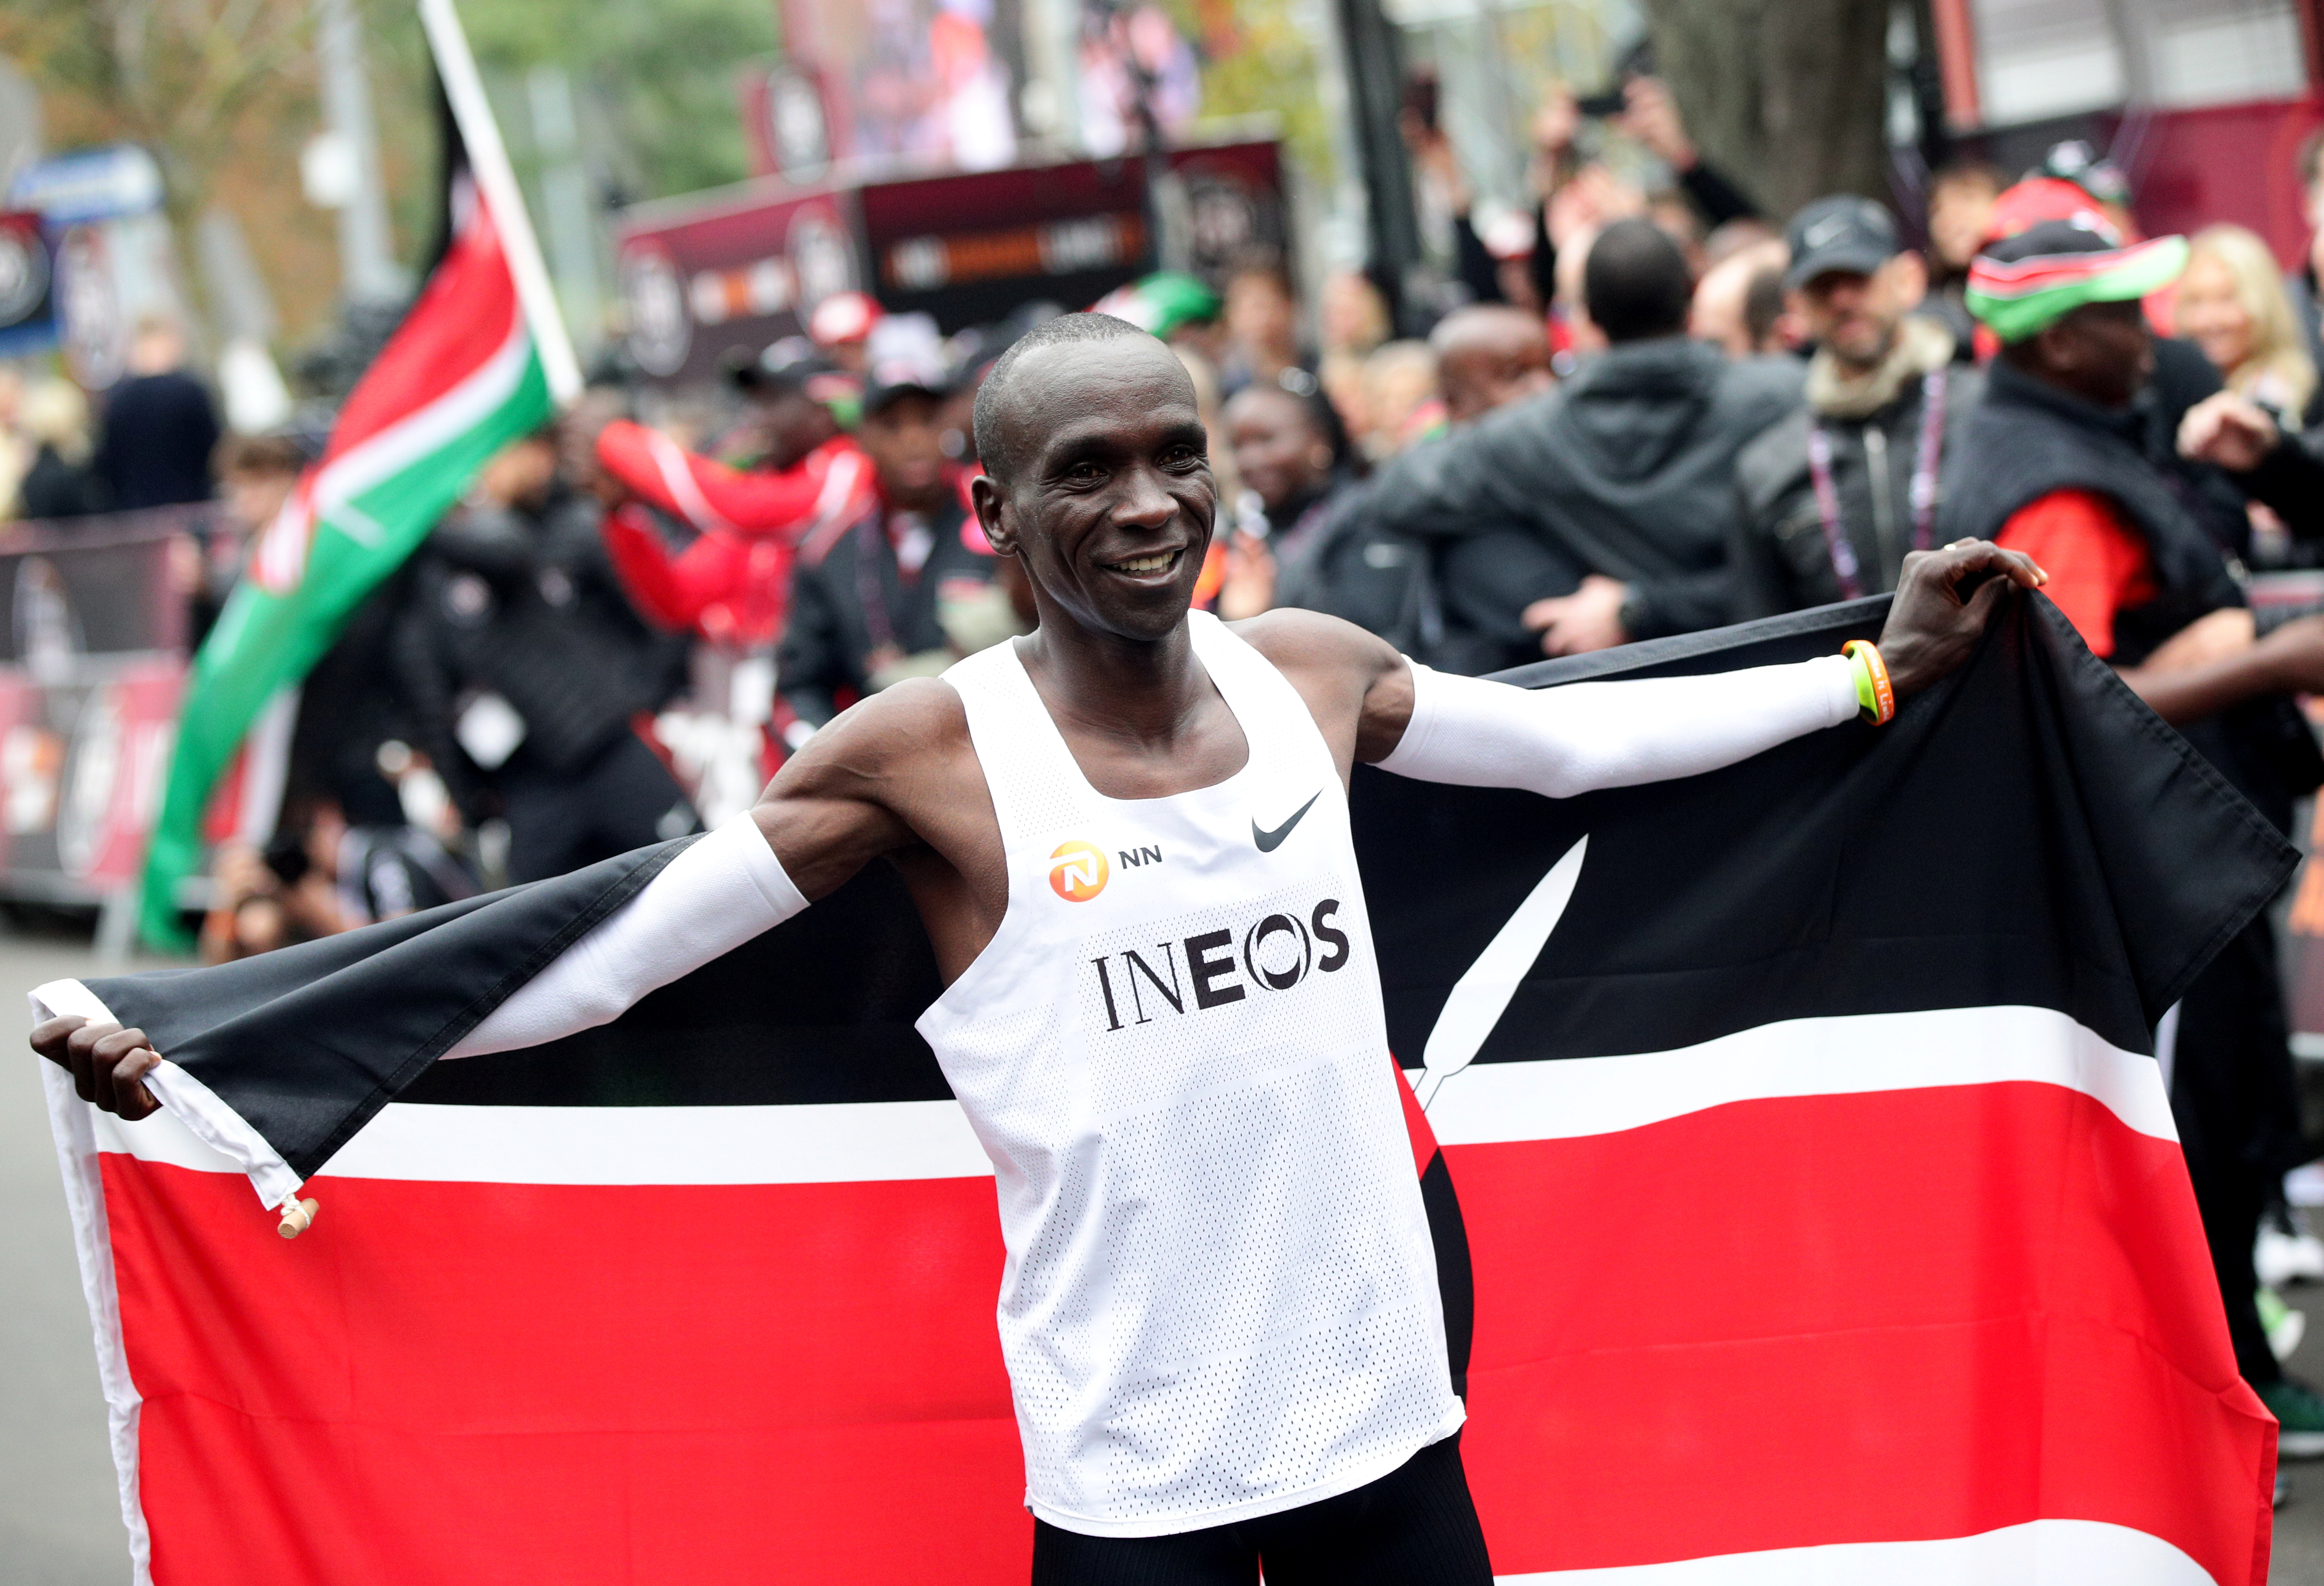 Kipchoge yet to make Tokyo 2020 plans, targets full recovery